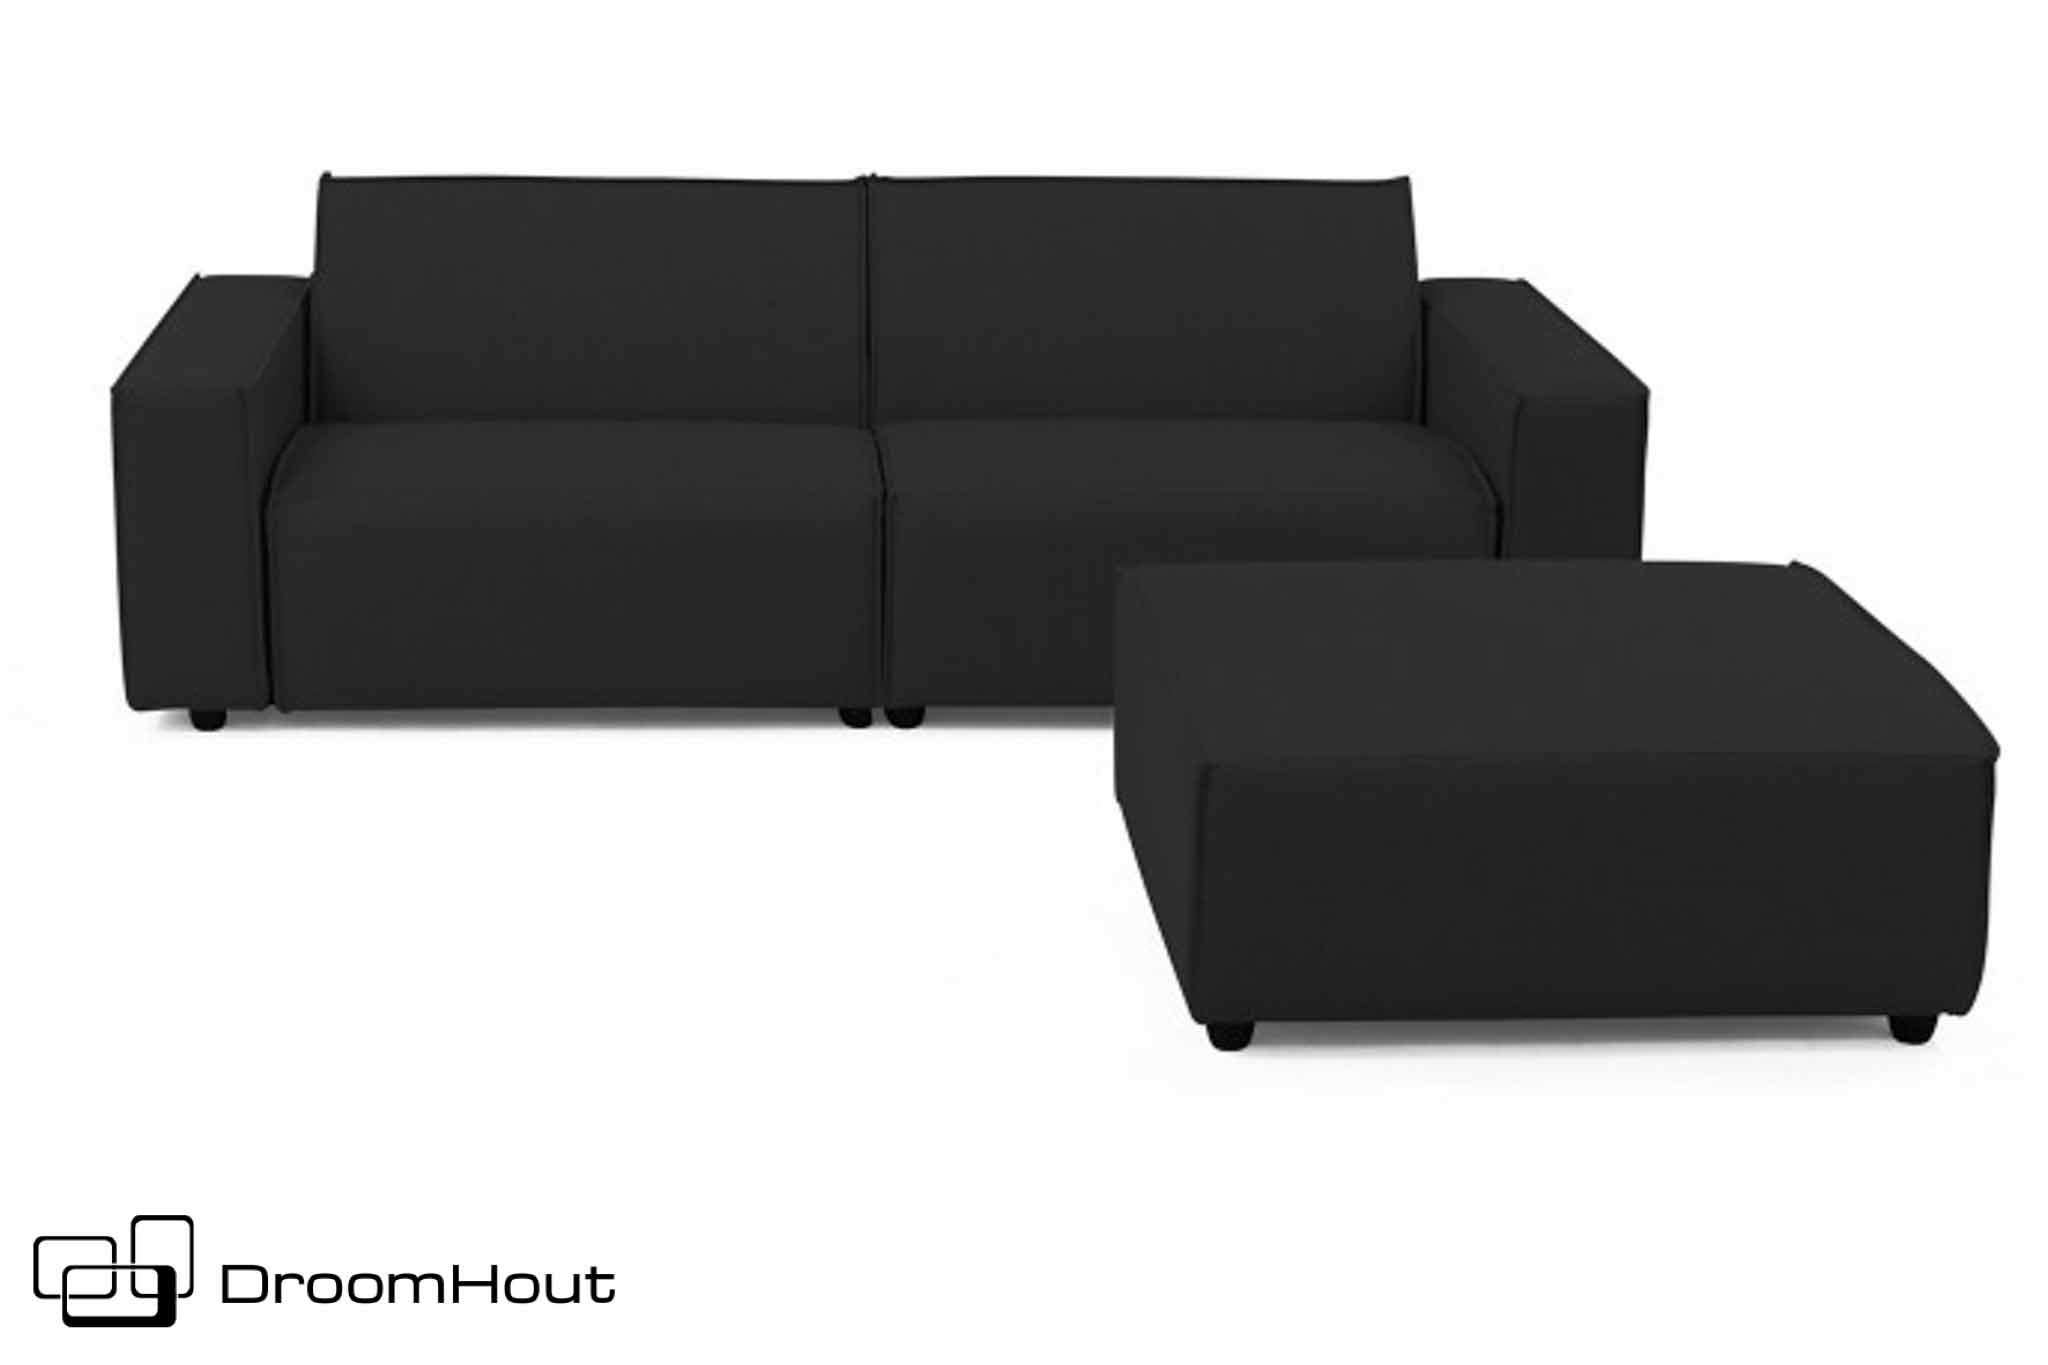 Loungeset 3-zits bank plus hocker bubalou